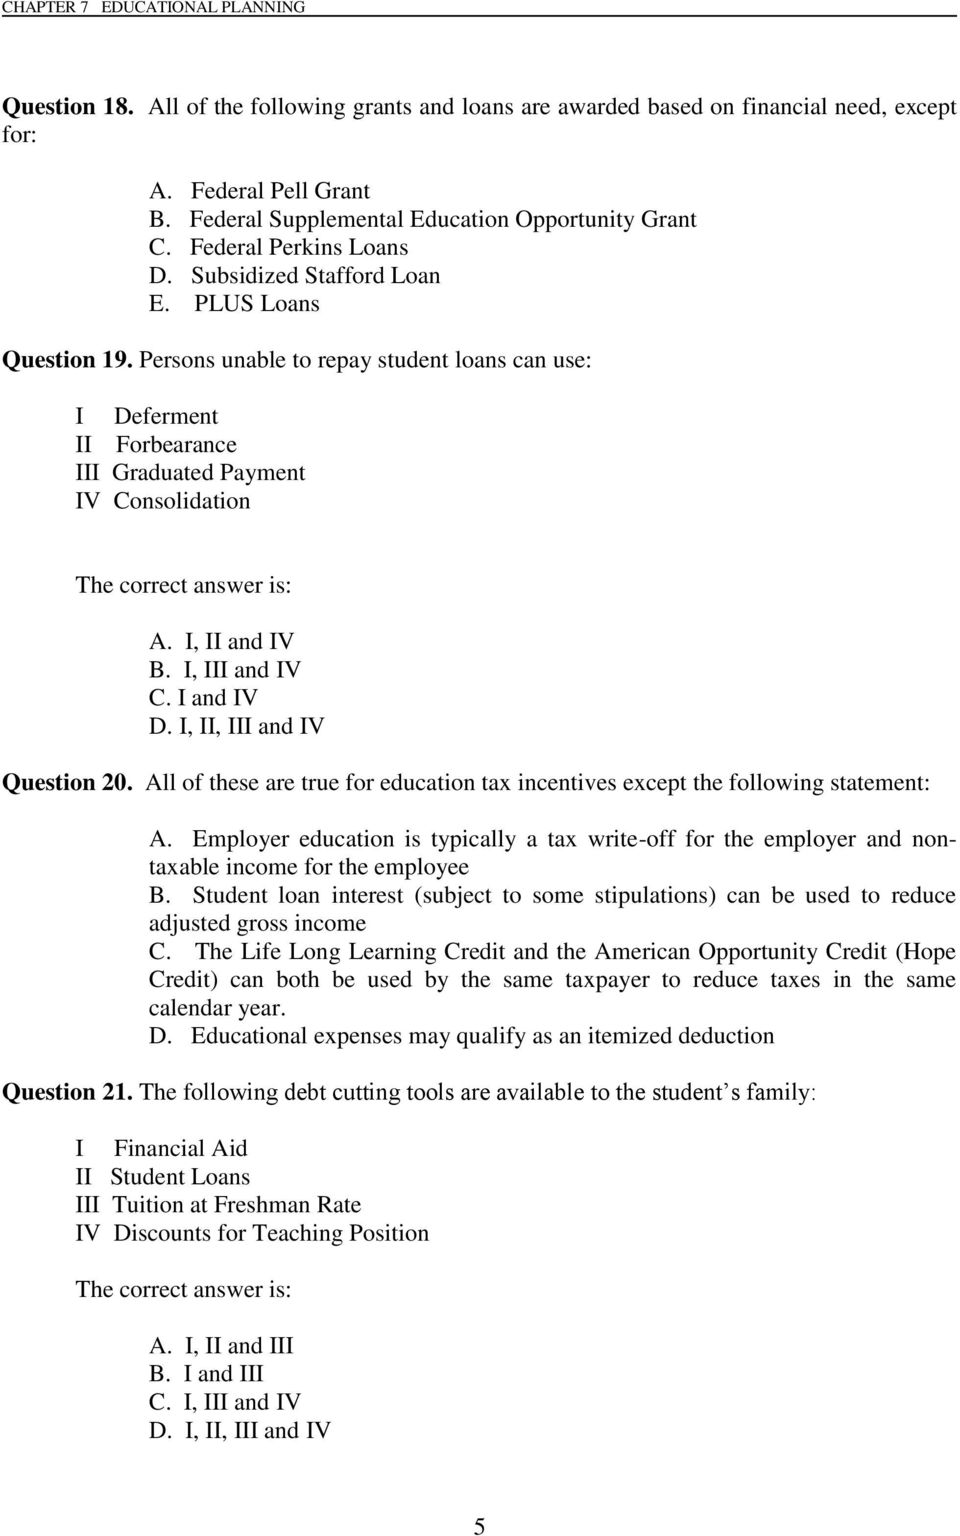 Chapter 7 Multiple Choice Questions Pdf